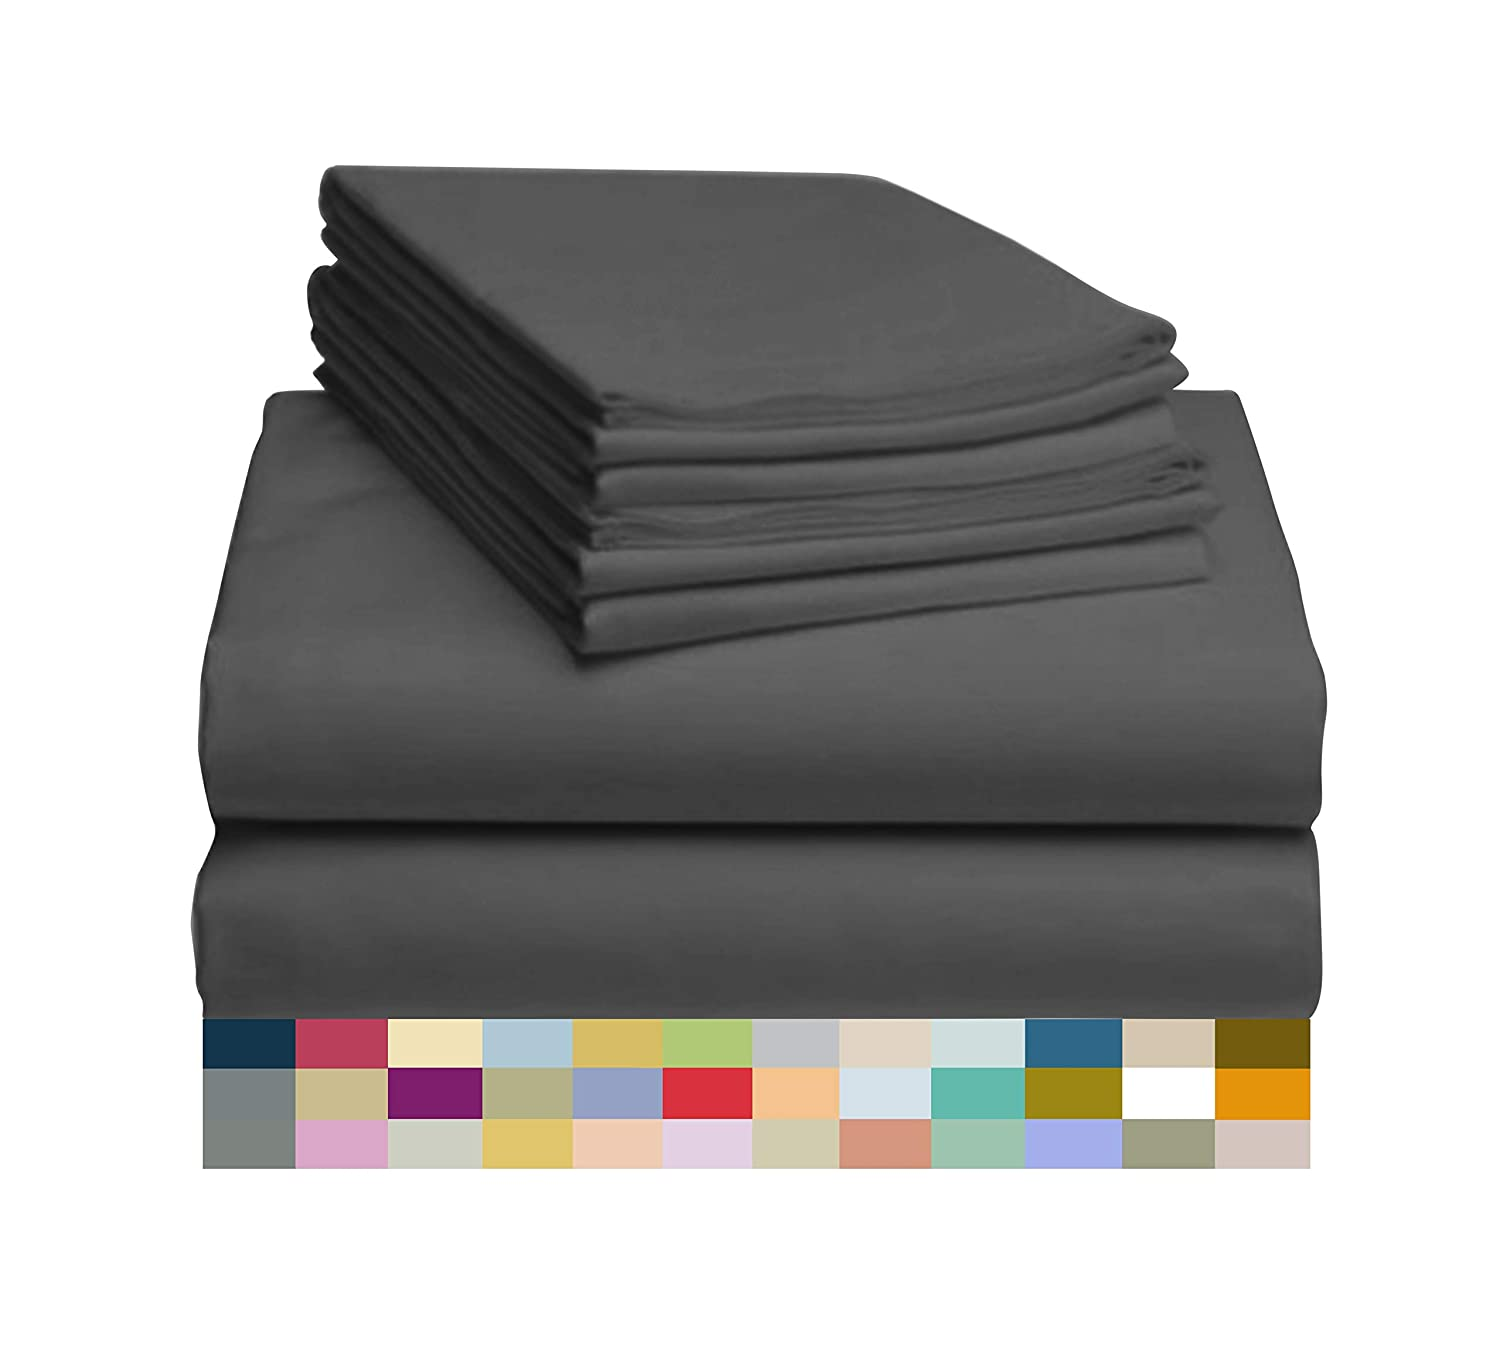 "LuxClub 6 PC Sheet Set Bamboo Sheets Deep Pockets 18"" Eco Friendly Wrinkle Free Sheets Hypoallergenic Anti-Bacteria Machine Washable Hotel Bedding Silky Soft - Dark Grey Queen"